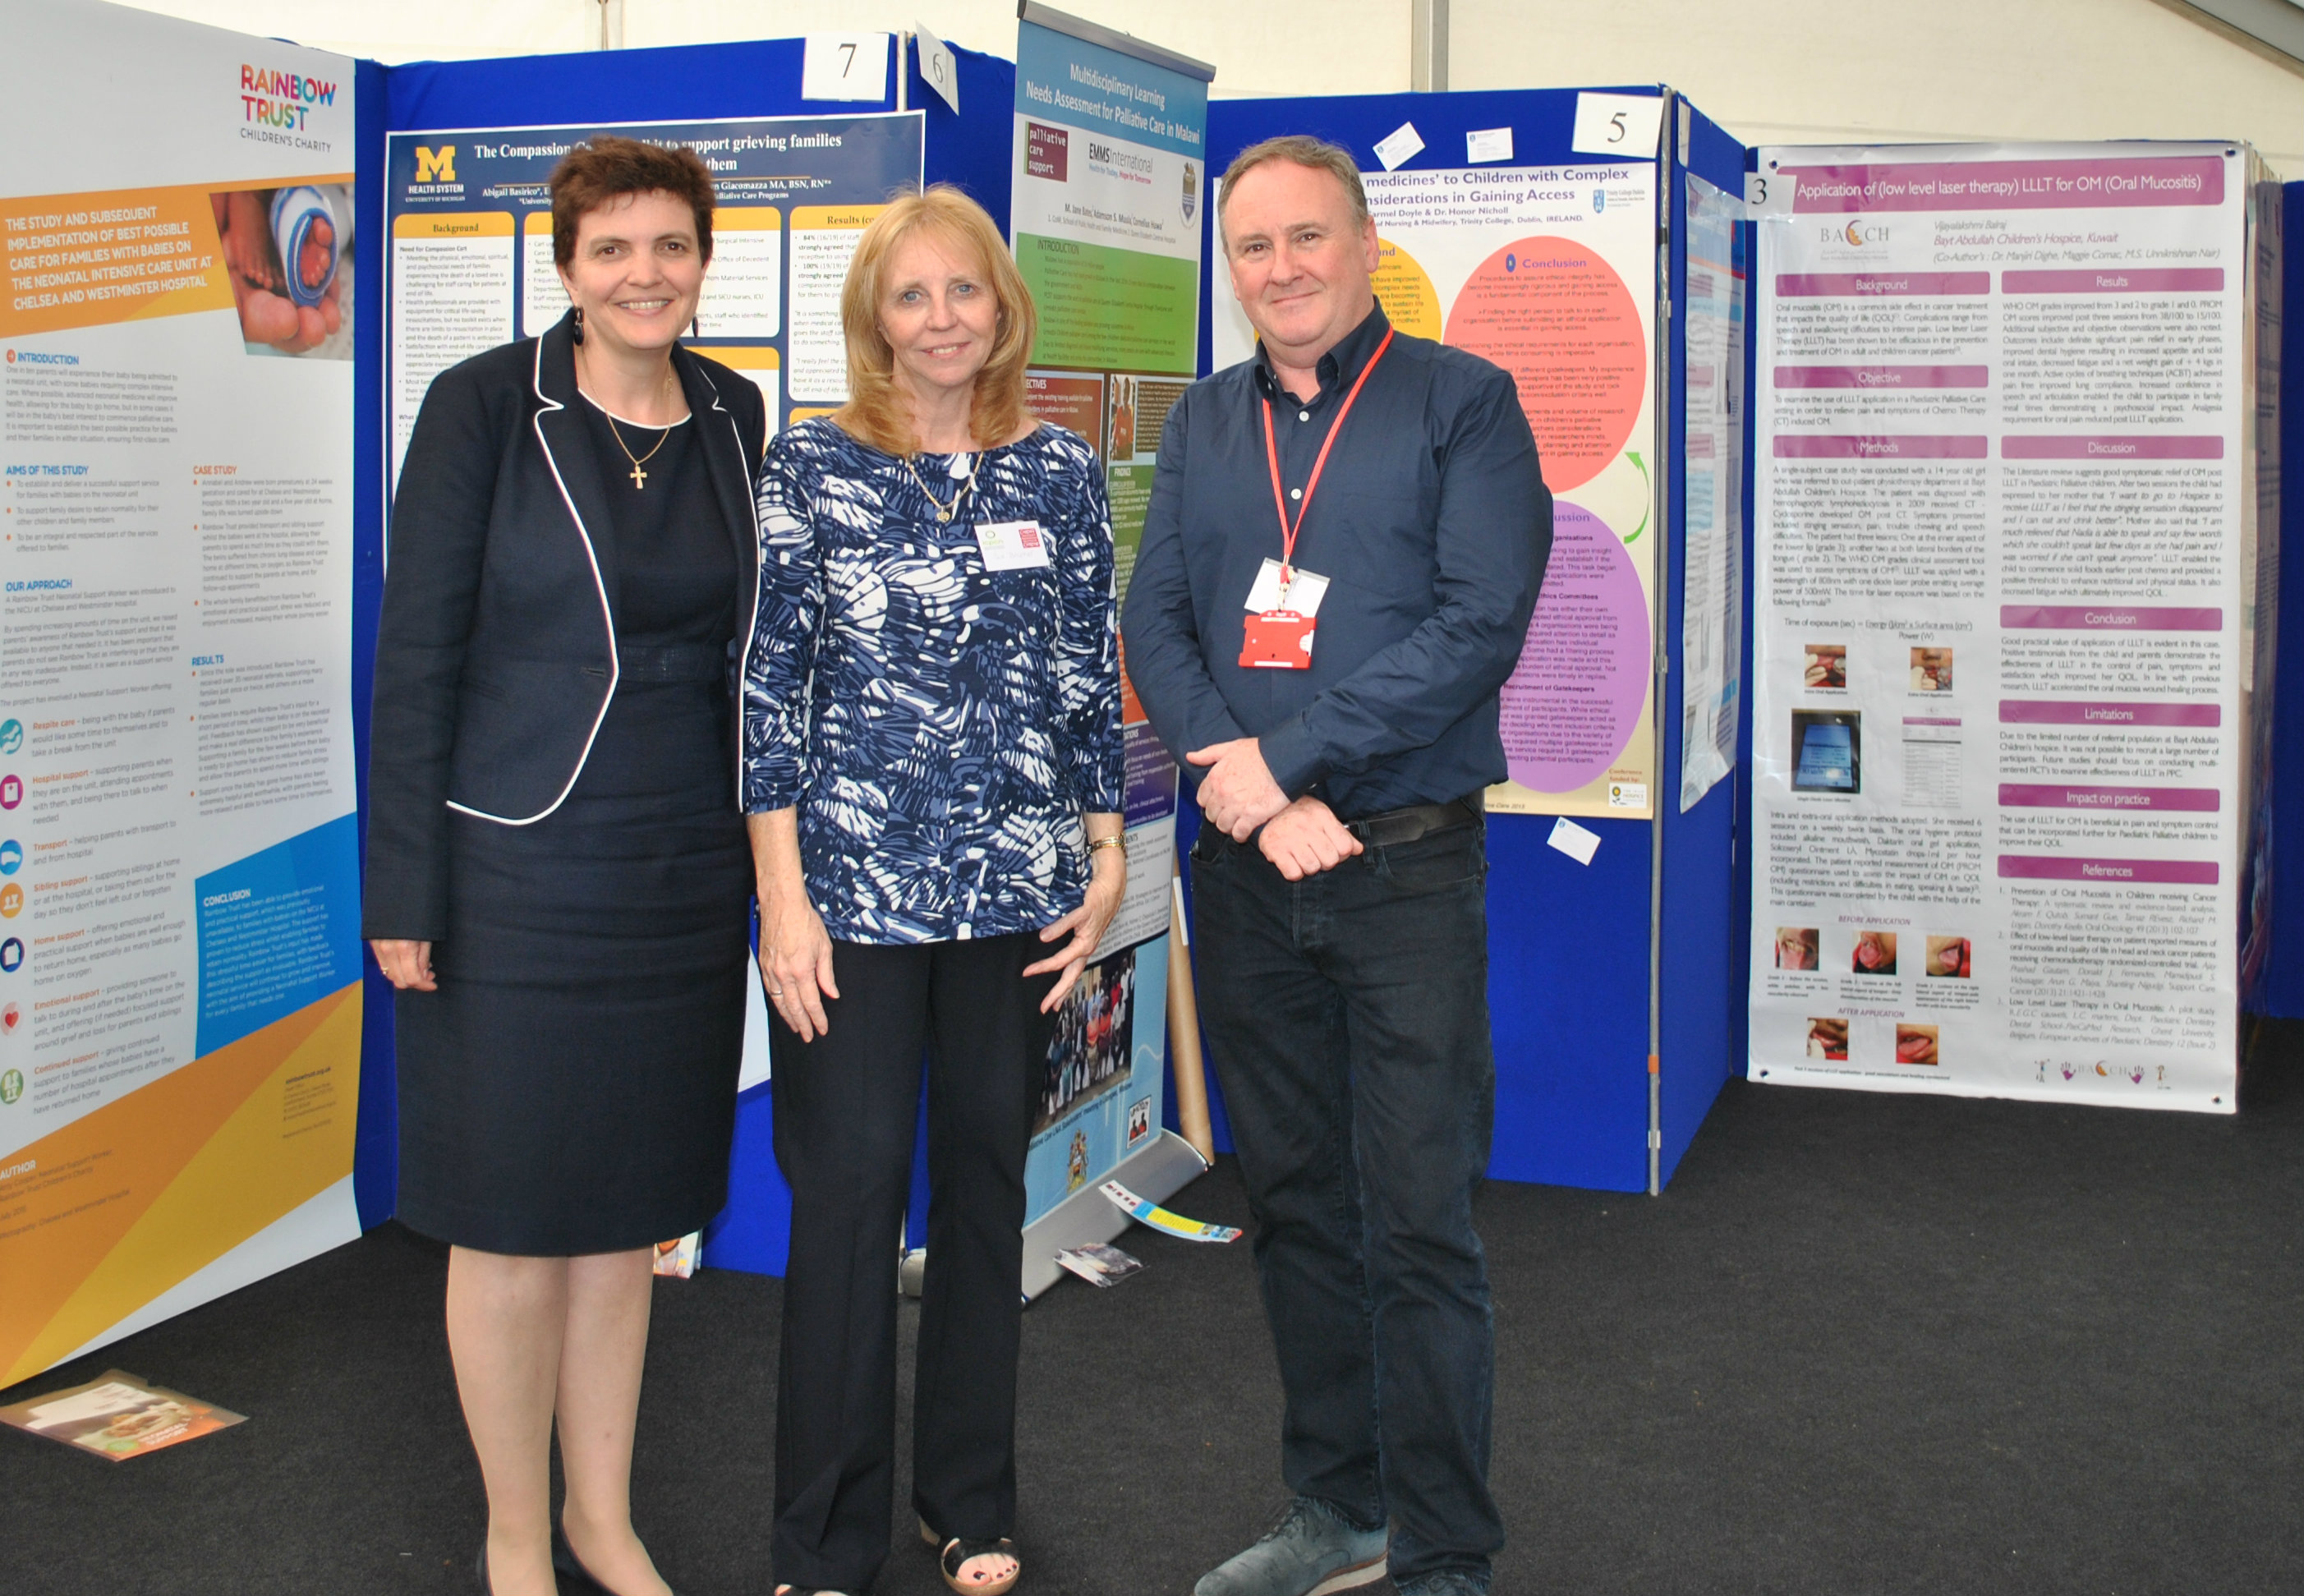 Cardiff Conference poster judges